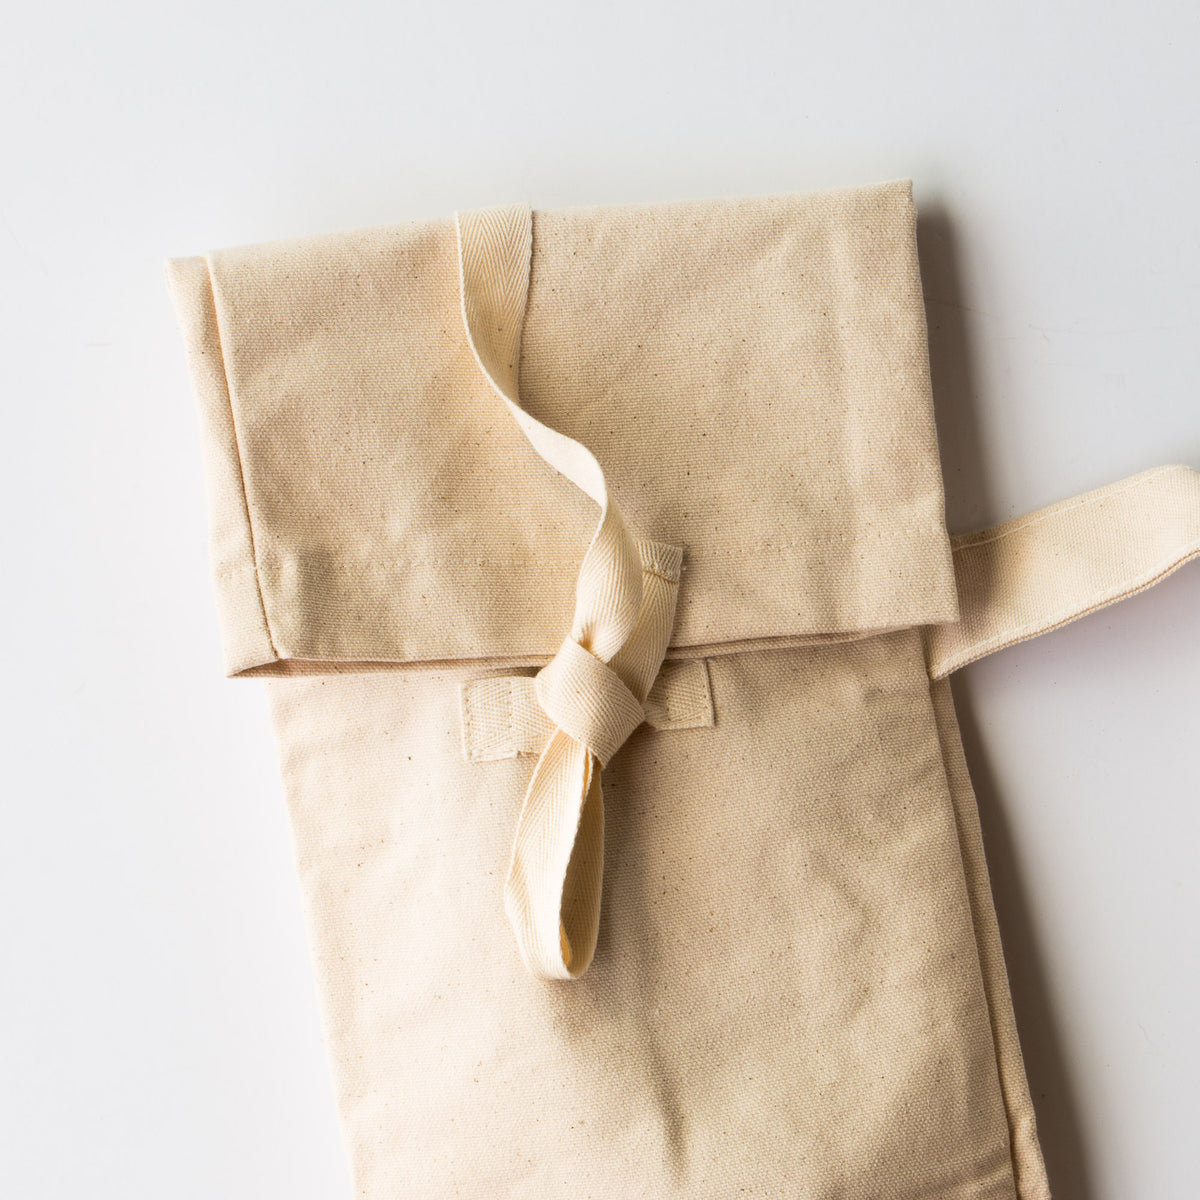 Closed Reusable Baguette Bag - Zero Waste 100% Cotton Bread Bag - Sold by Chic & Basta